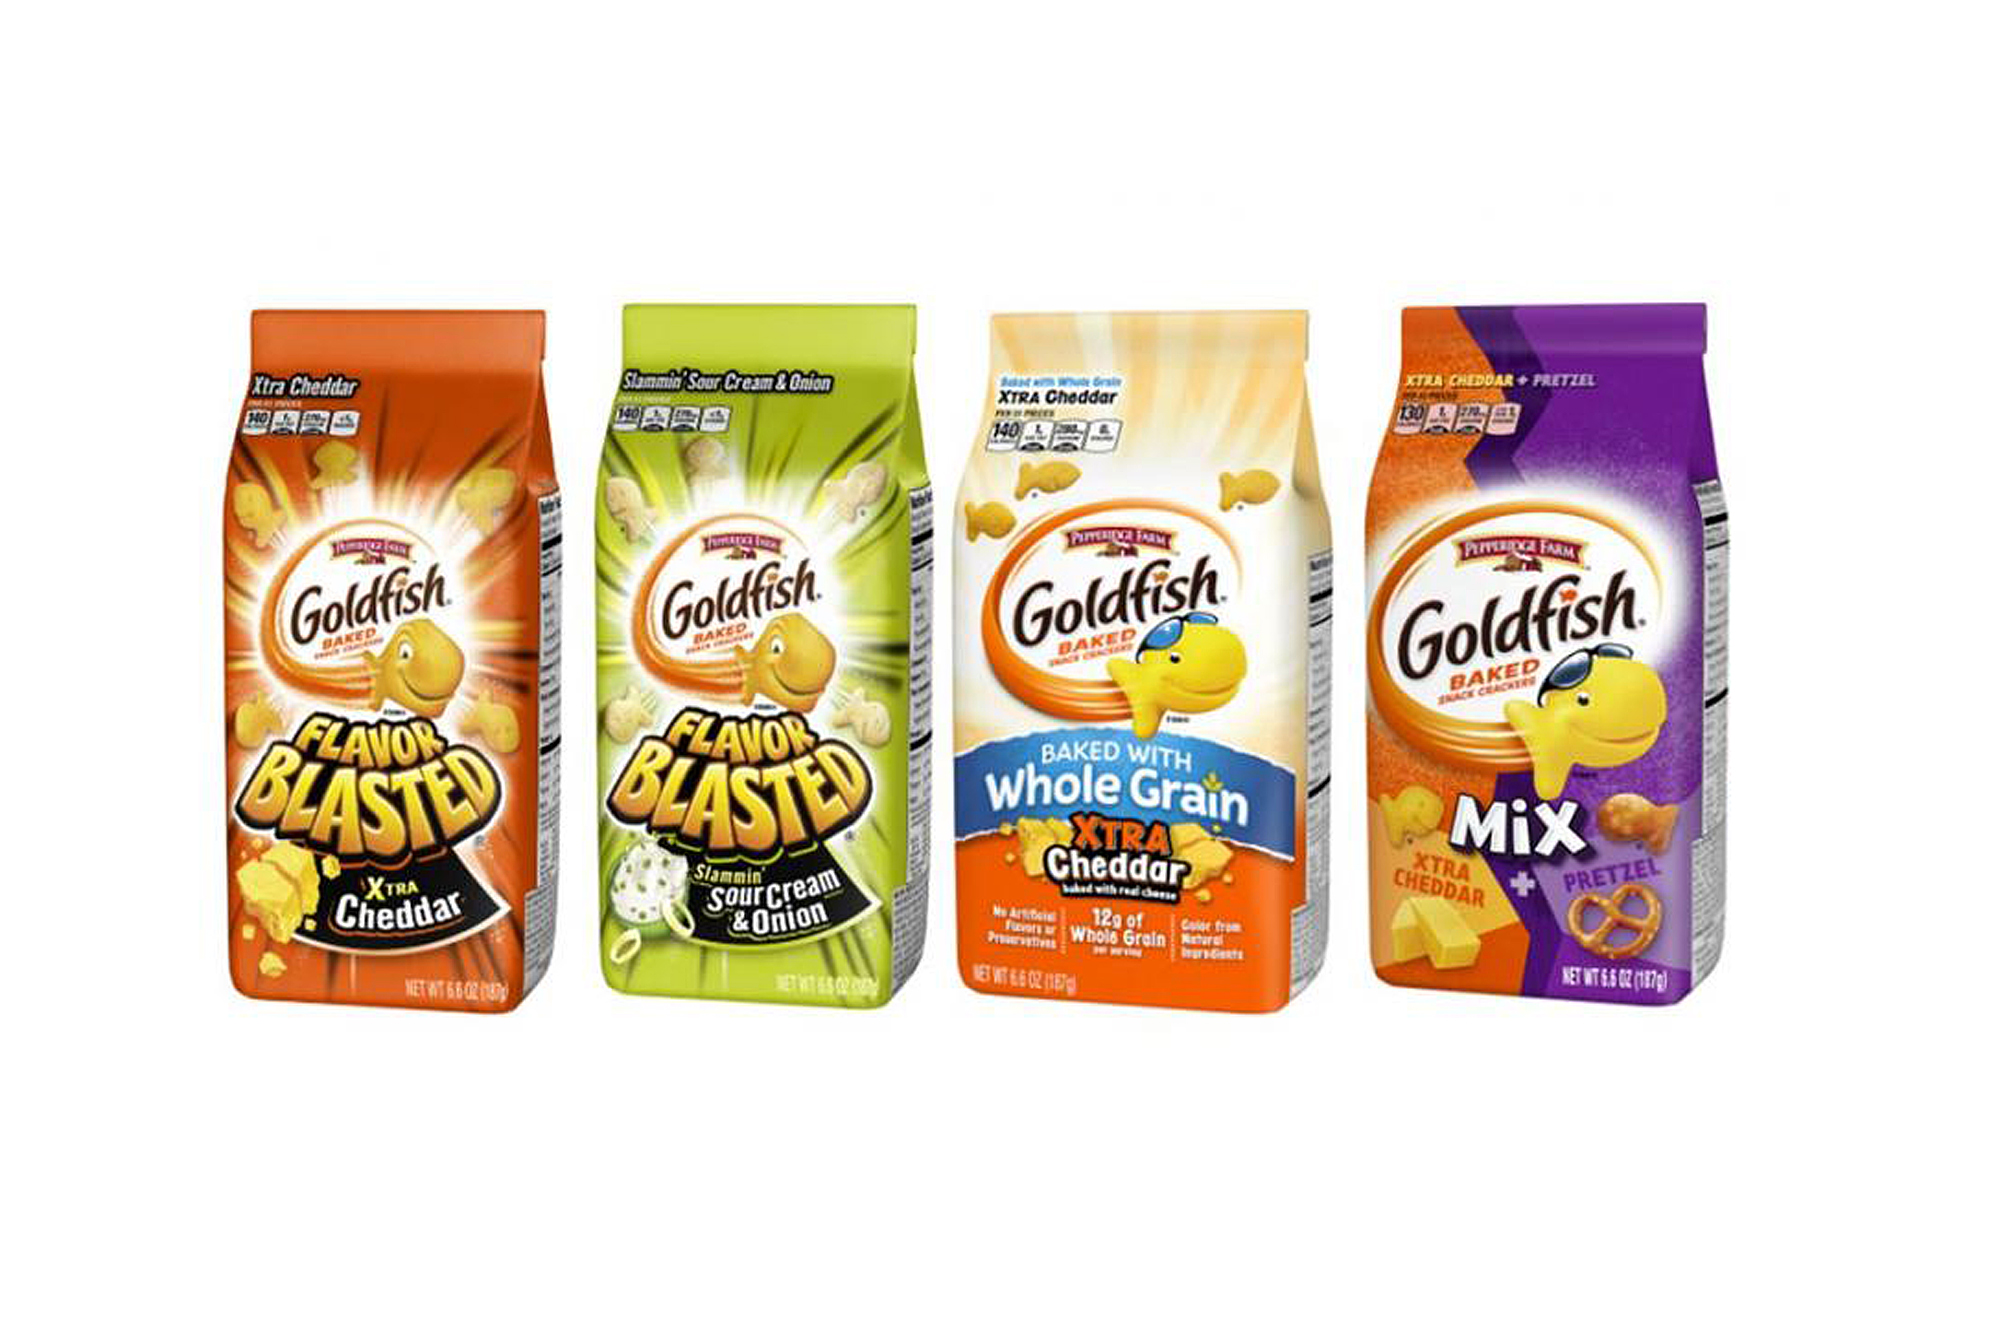 Pepperidge Farm Recalls 4 Different Kinds of Goldfish Crackers Due to Salmonella Risk goldfish-recall-flavors-1-2000